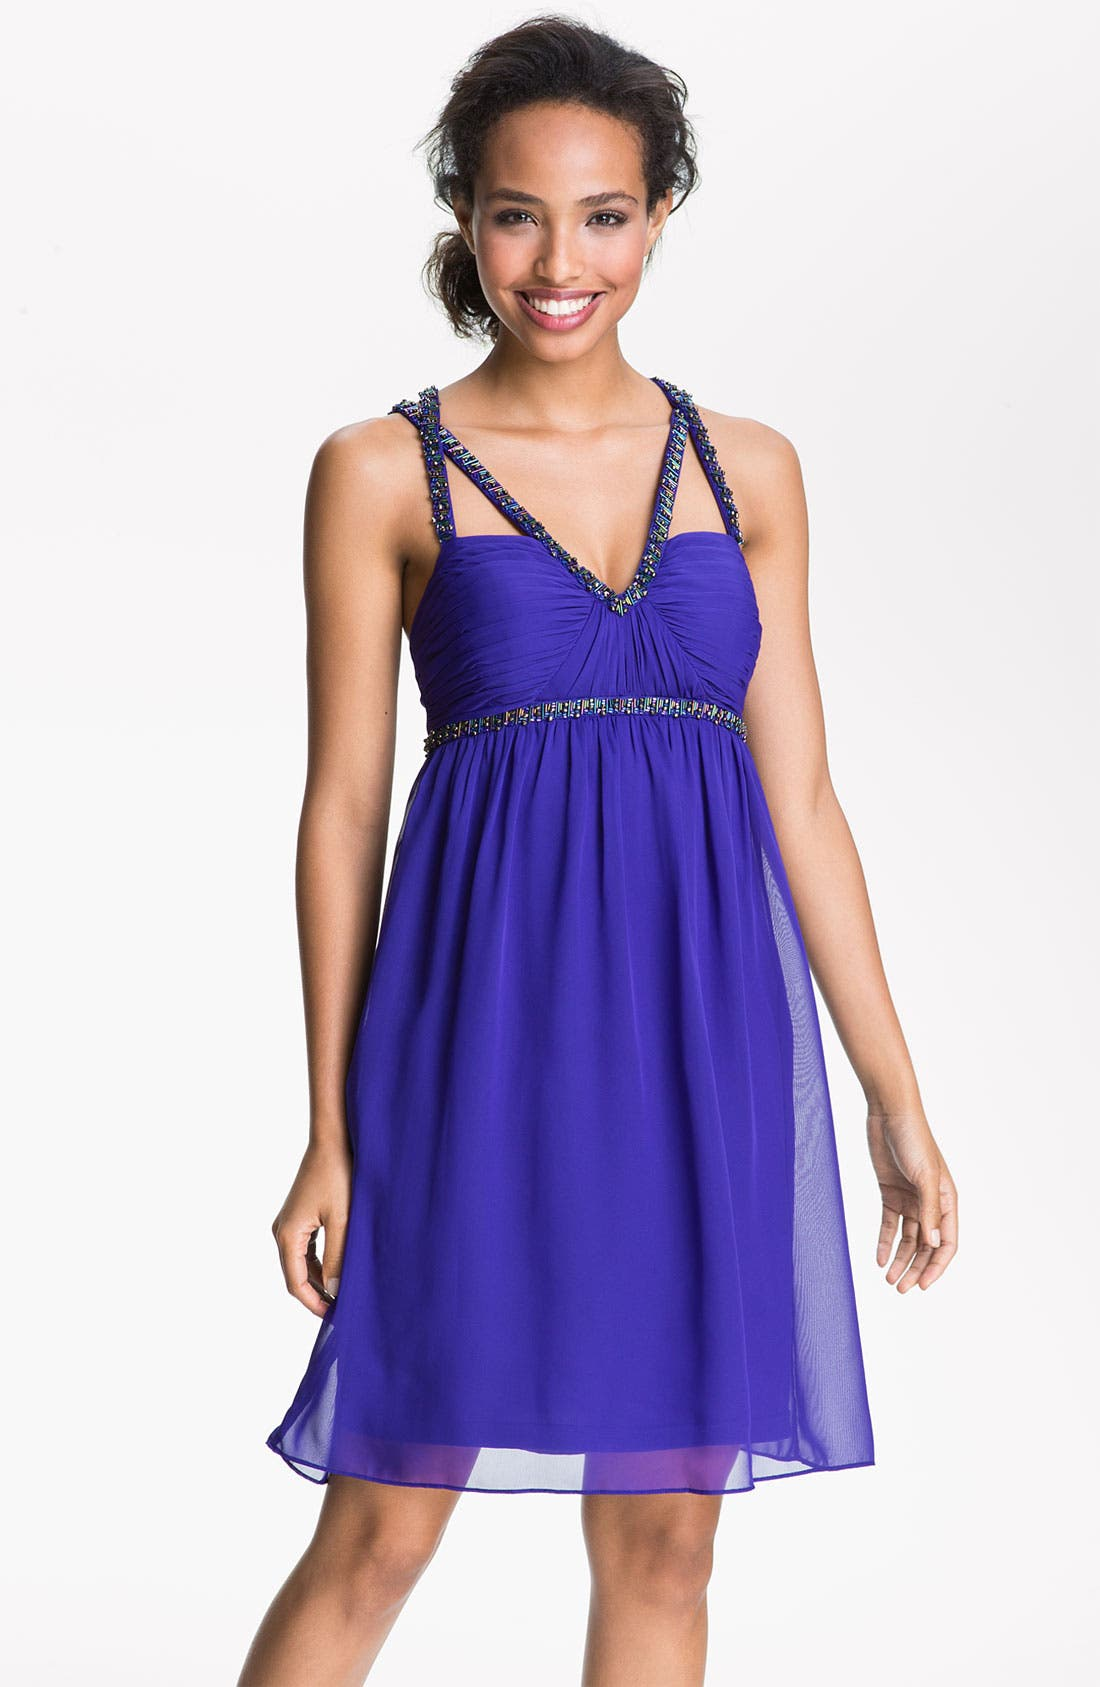 Alternate Image 1 Selected - Hailey by Adrianna Papell Beaded Cross Strap Chiffon Dress